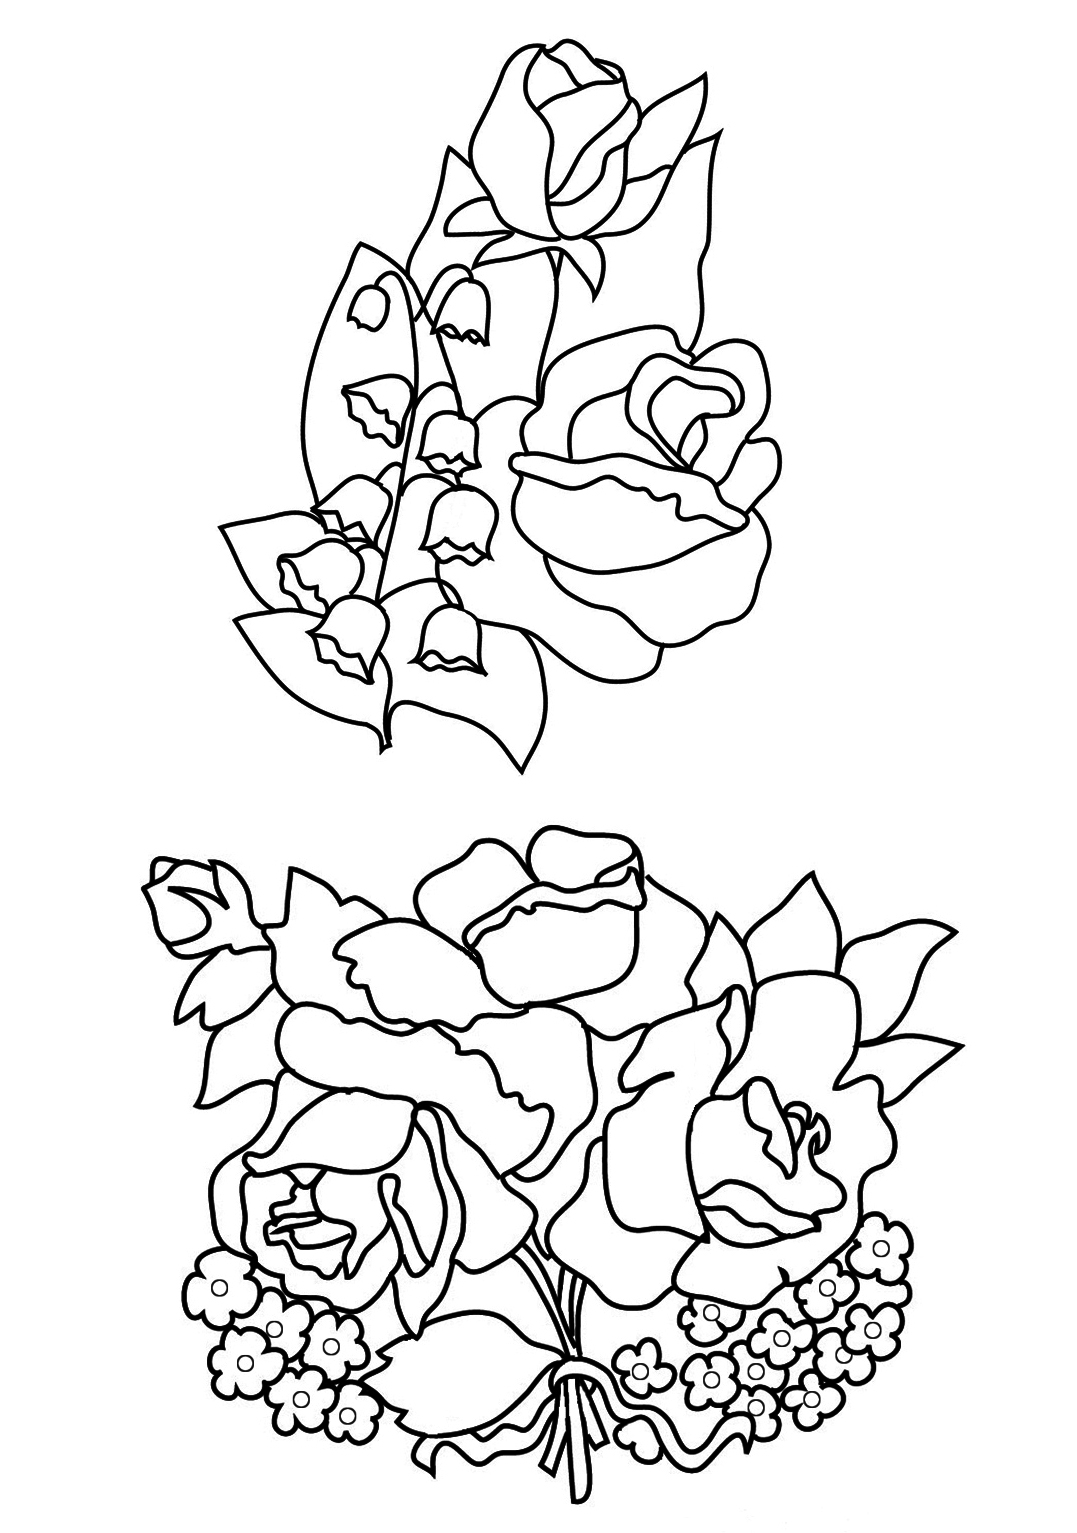 colouring page of flowers free printable flower coloring pages for kids best of colouring flowers page